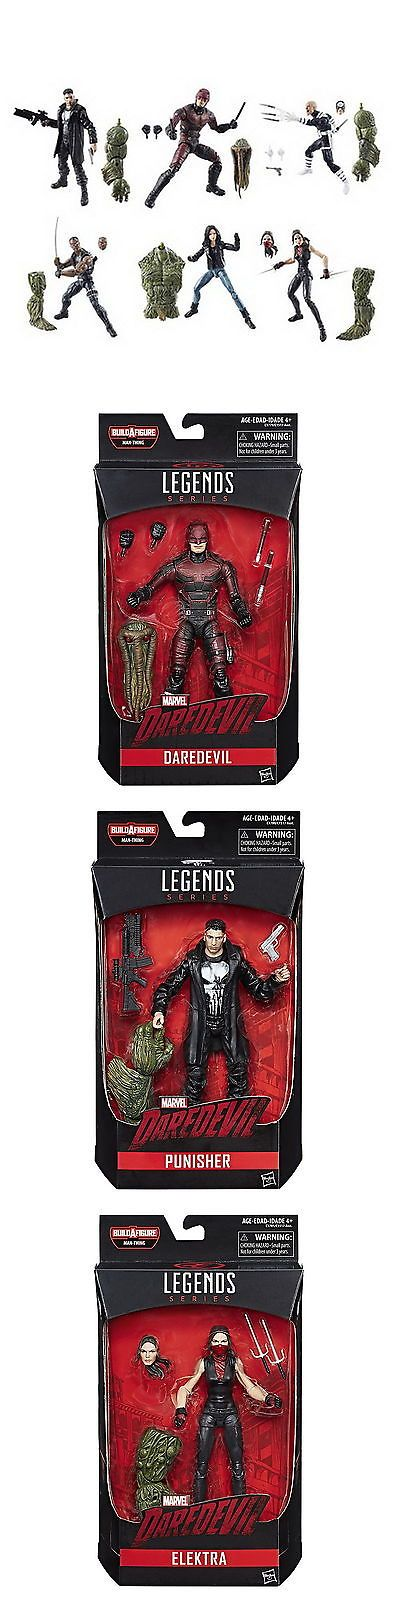 Comic Book Heroes 158671: Set Of 6: 2017 Marvel Legends Netflix Marvel Knights Man-Thing Build A Figure -> BUY IT NOW ONLY: $129.99 on eBay!